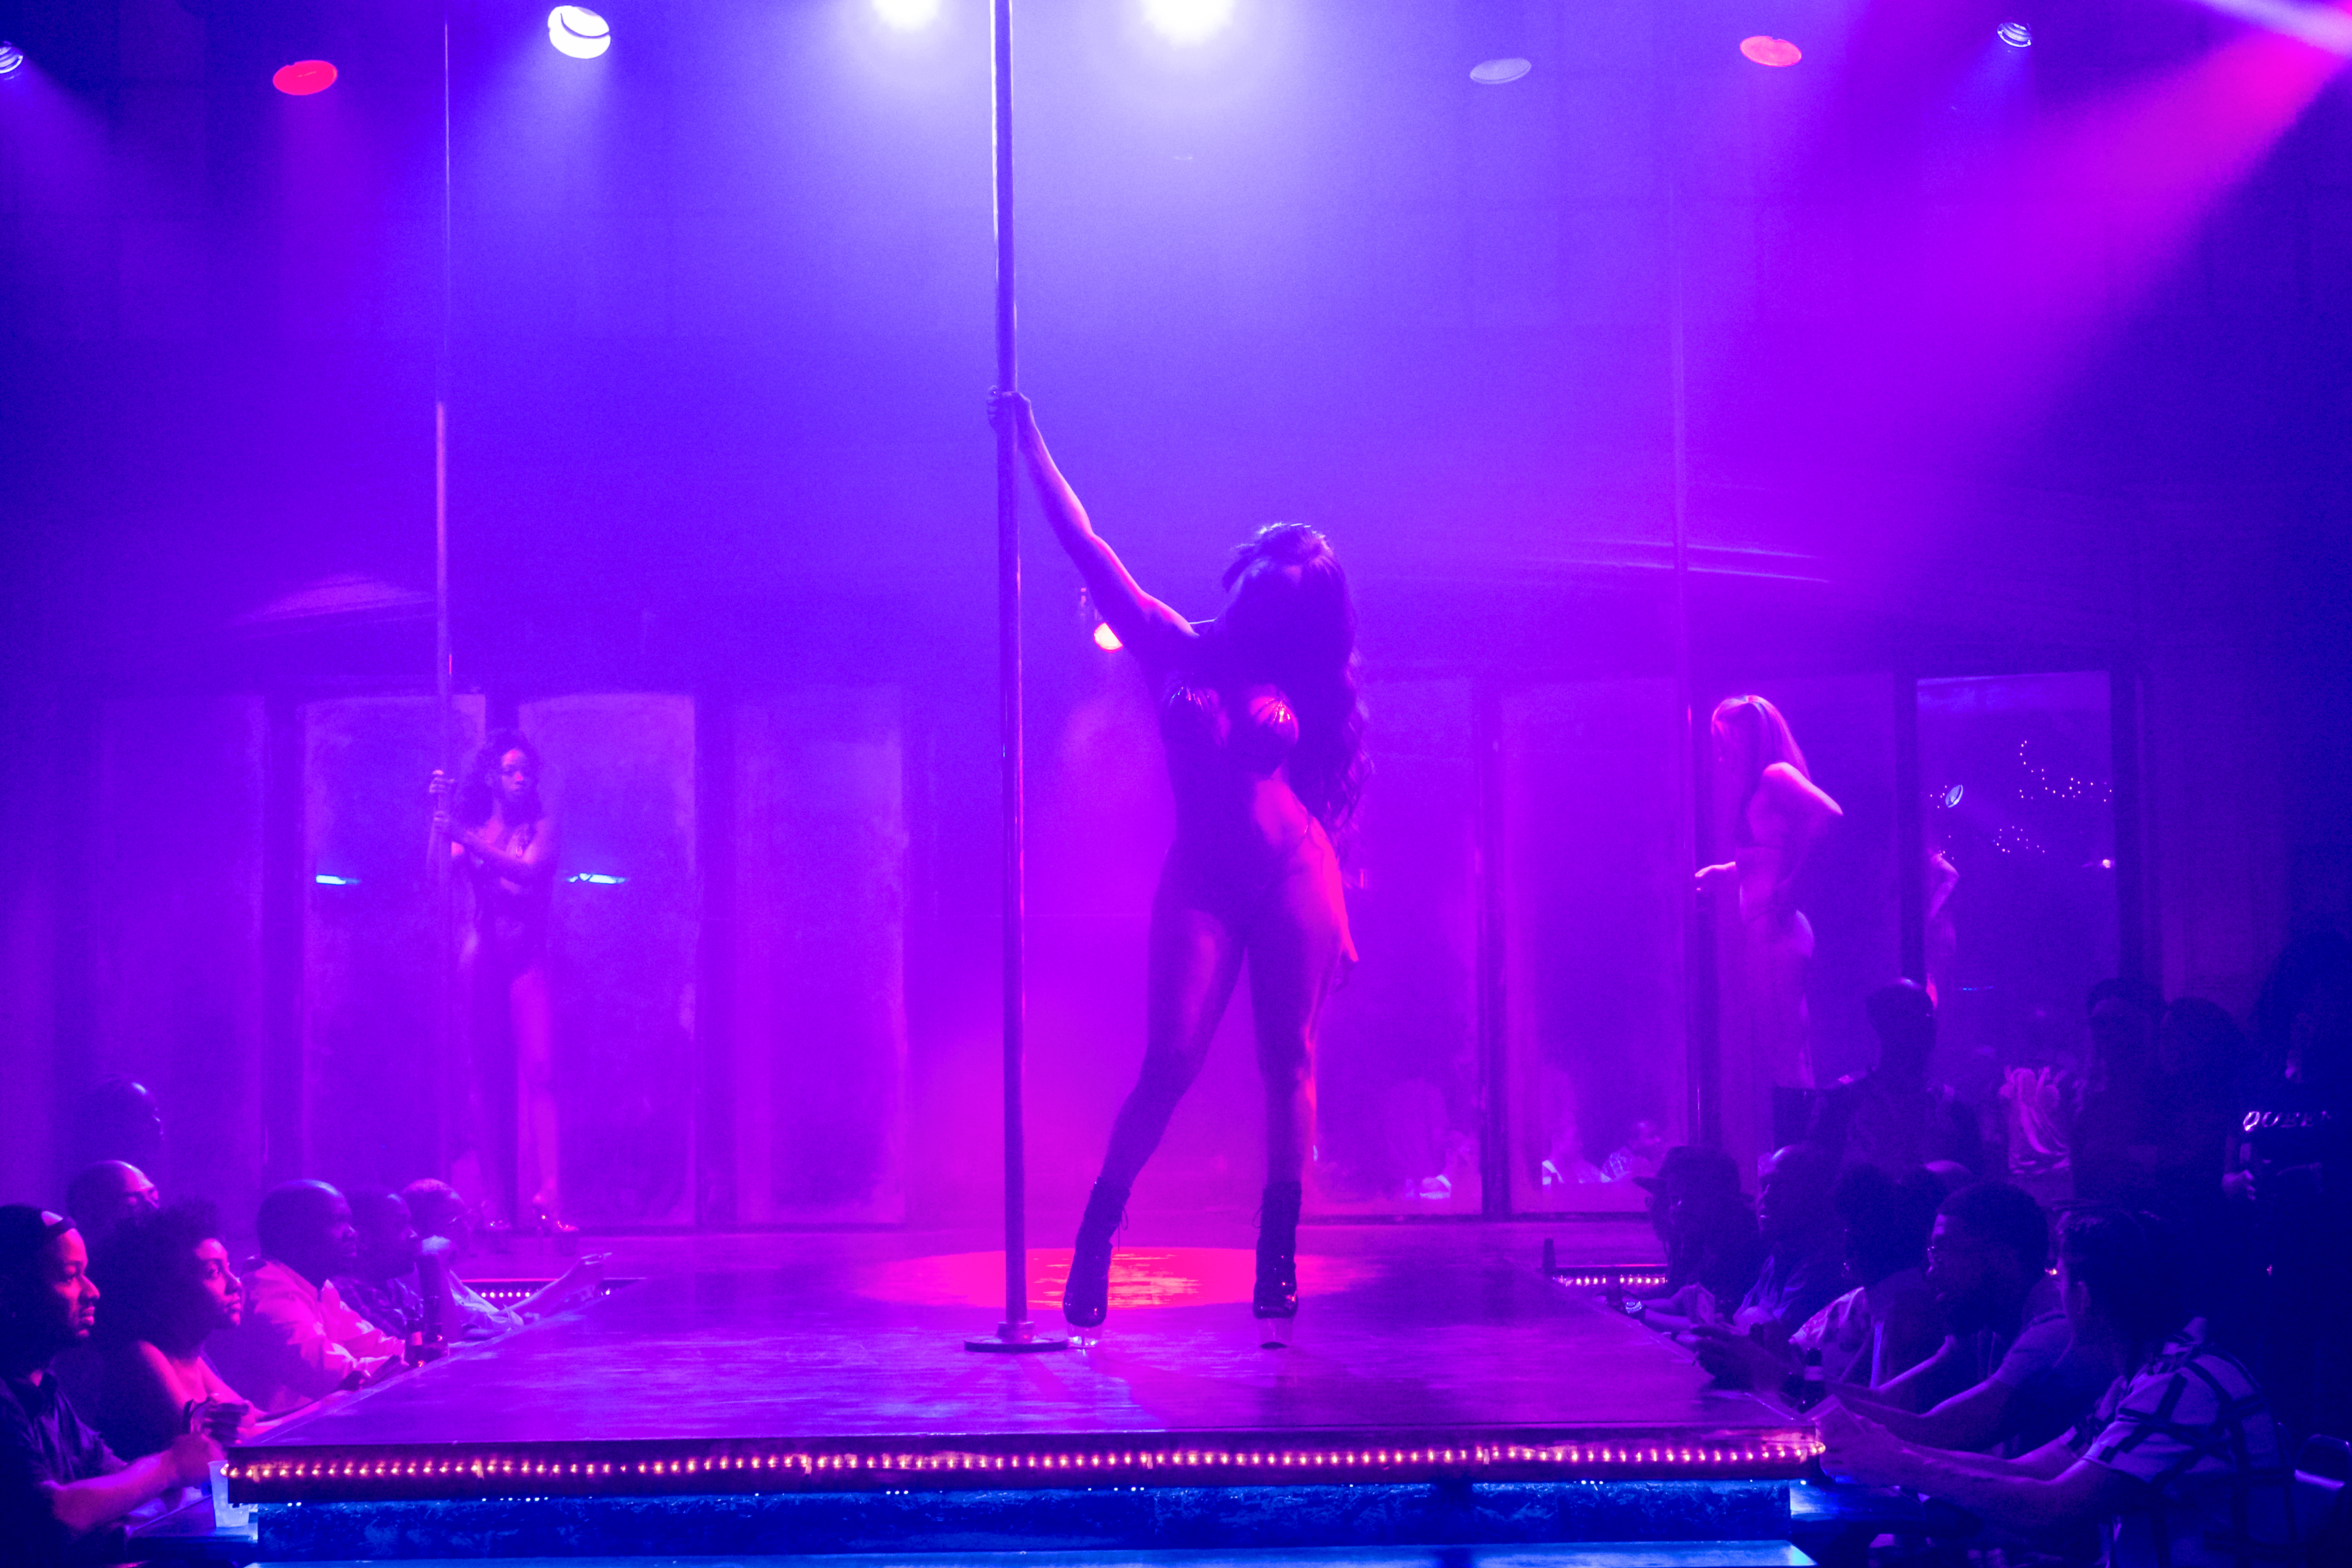 A dancer prepares for a pole dance in the Starz series P-Valley.